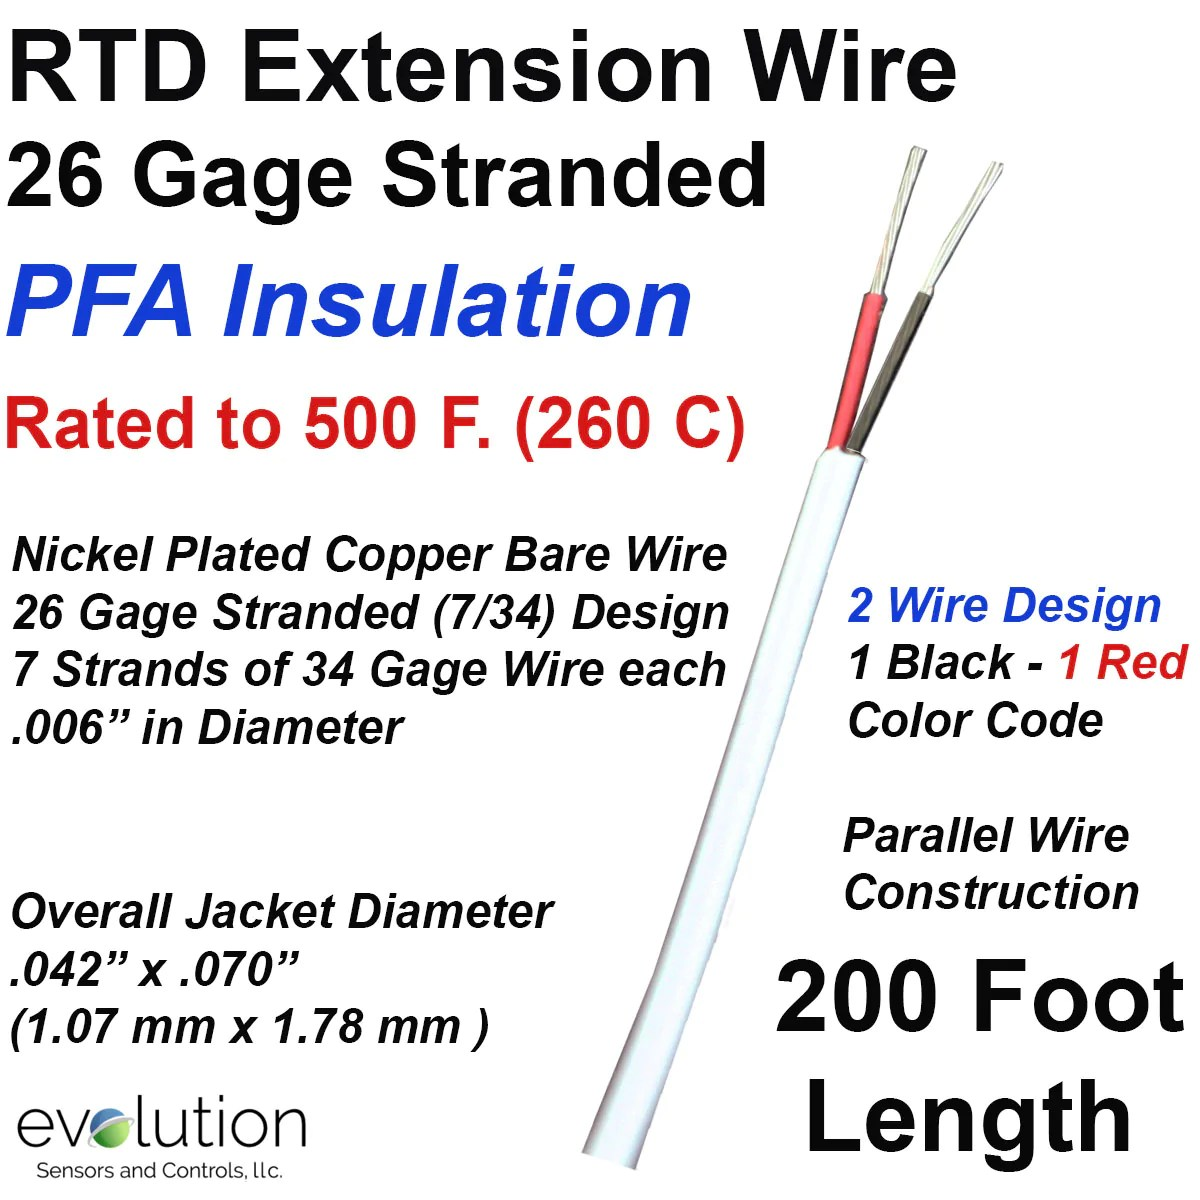 rtd extension wire 200 foot length 26 gage stranded 2 wire design rtd wiring color code  [ 1200 x 1200 Pixel ]